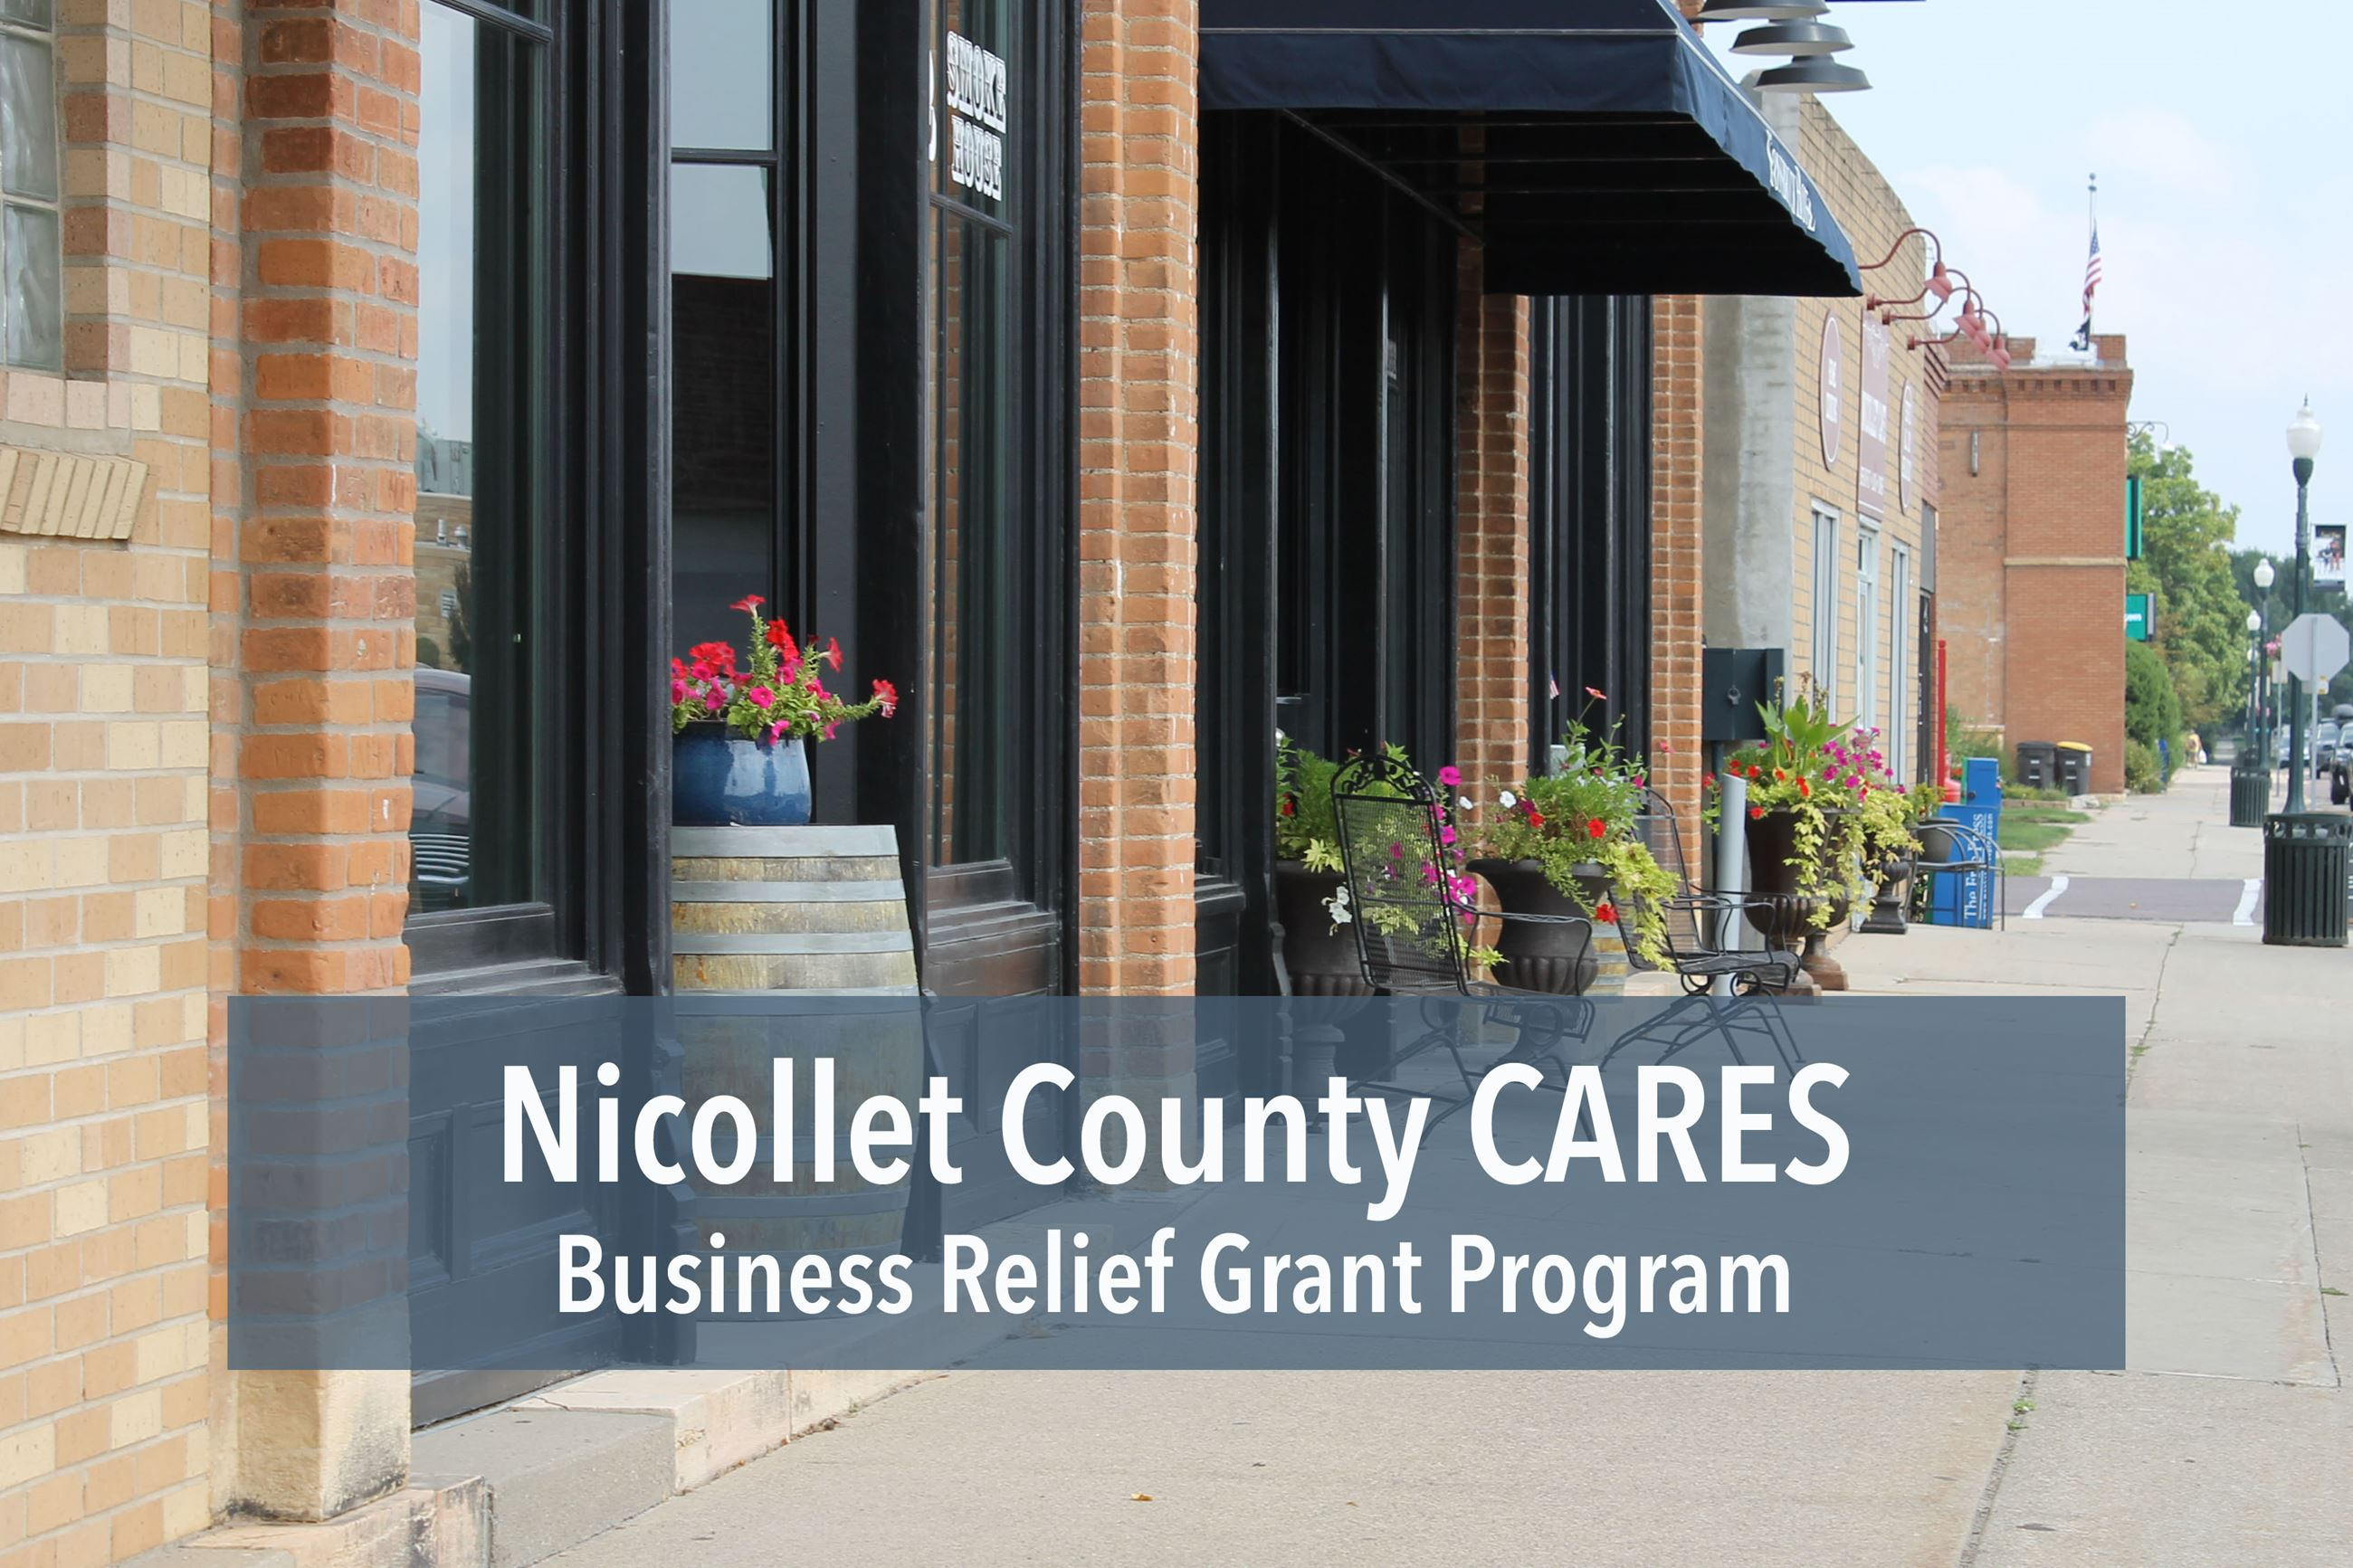 Storefront with text reading Nicollet County CARES Business Relief Grant Program